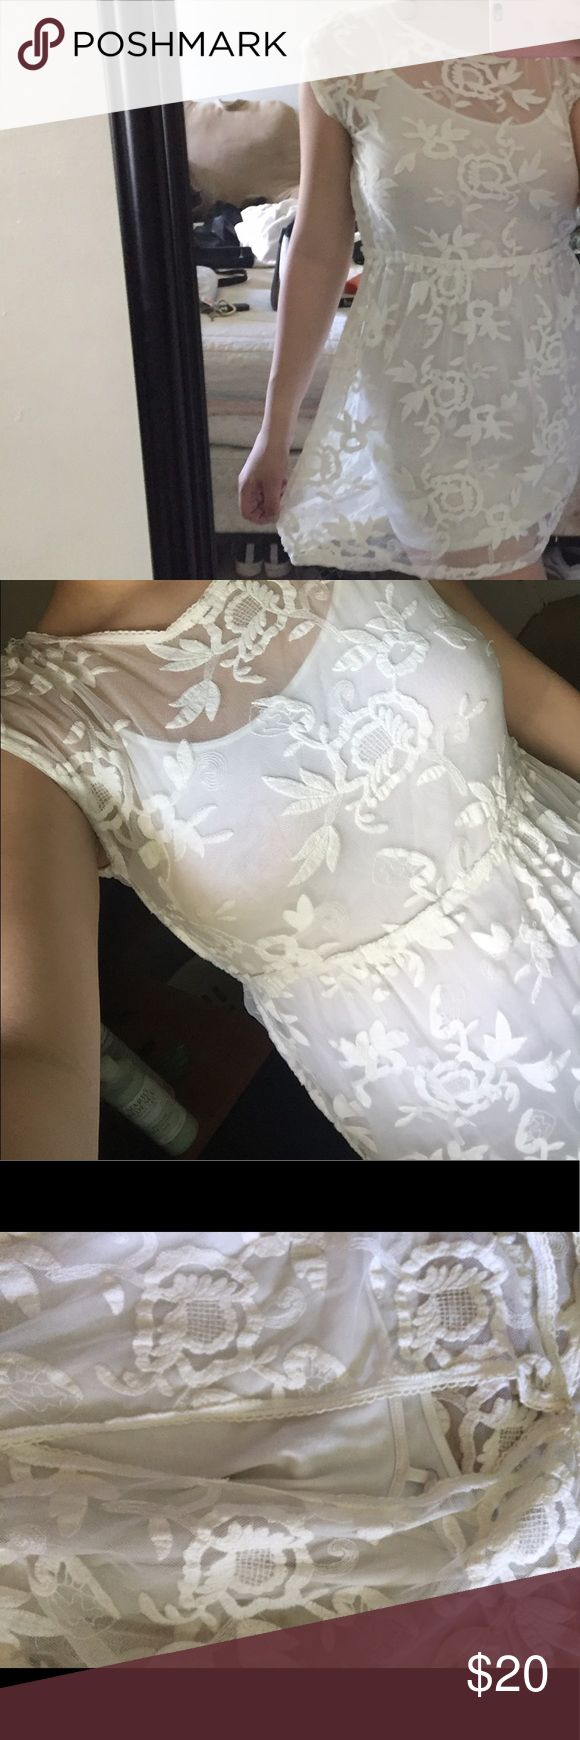 White Lace dress  Perfect for outdoor weddings and parties this summer!  Worn once but was a bit short on me since I'm 5'9.  Open back shown in last pic slip is included but is not attached to the dress Hollister Dresses Mini